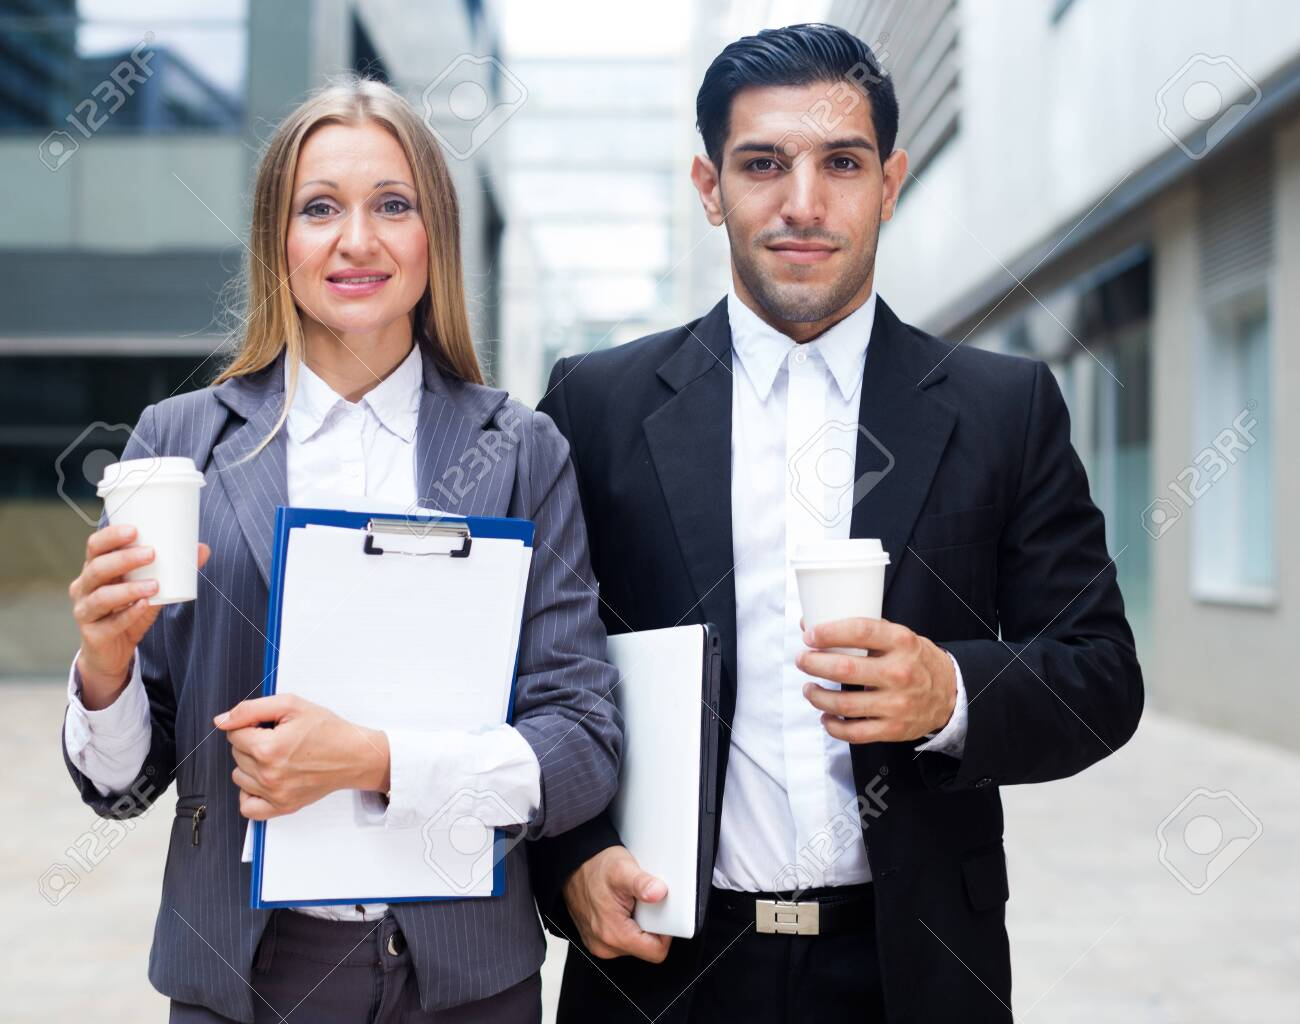 Businessman and his woman colleague in suit are standing with folder and coffee near the office. - 134554746